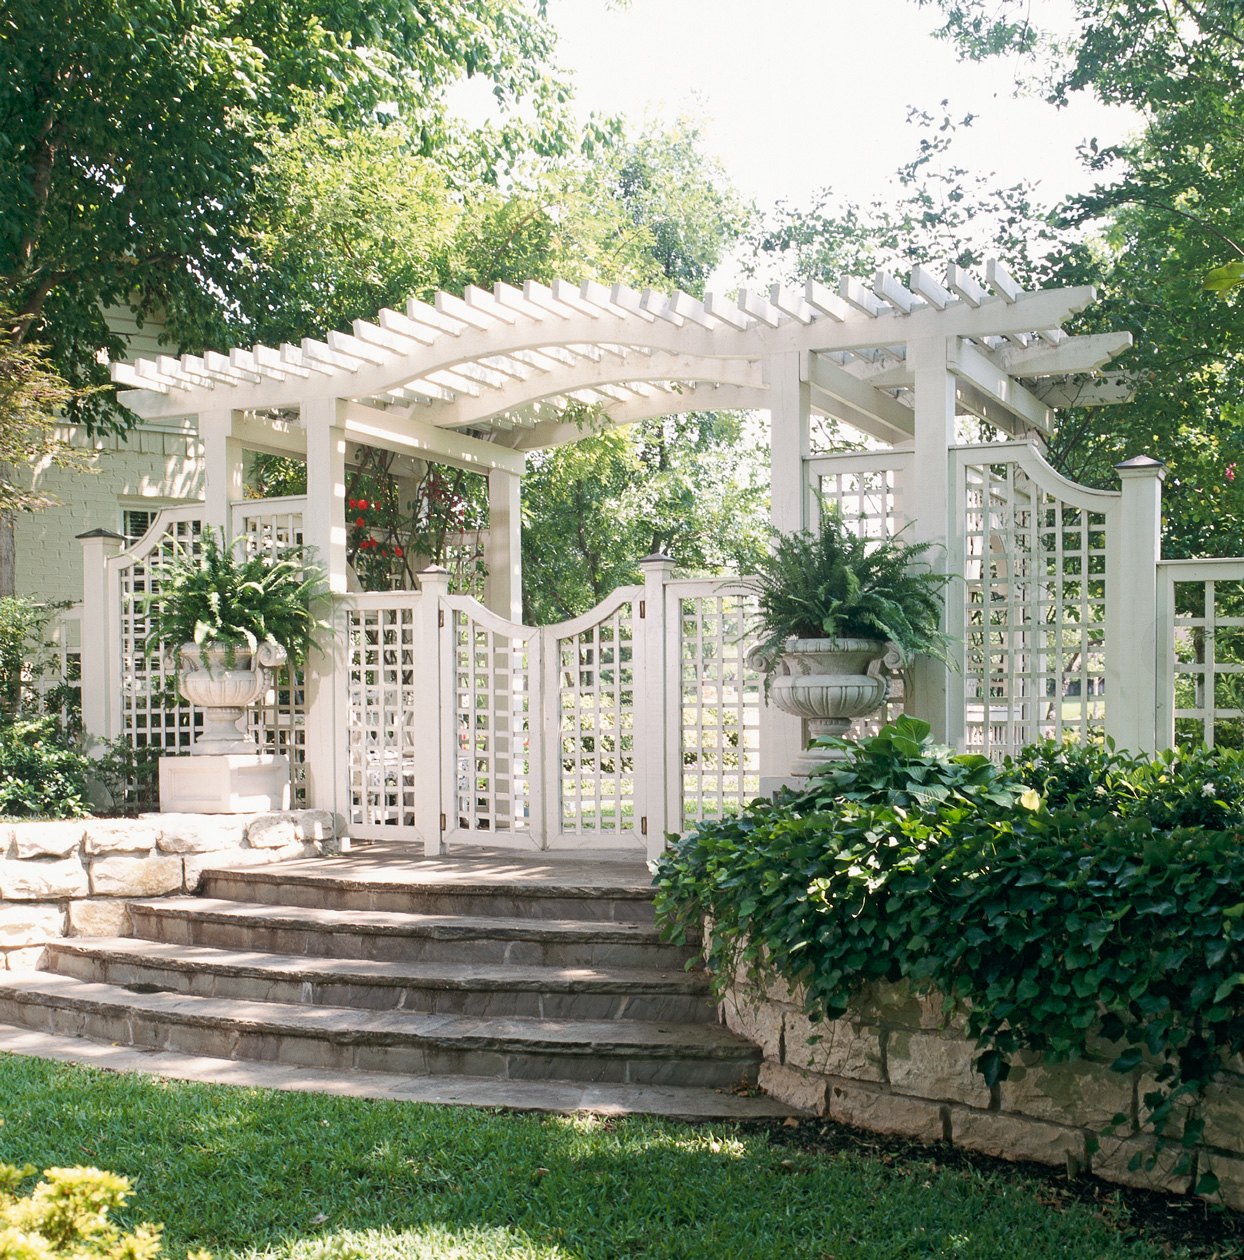 Decorative Trellis Gate